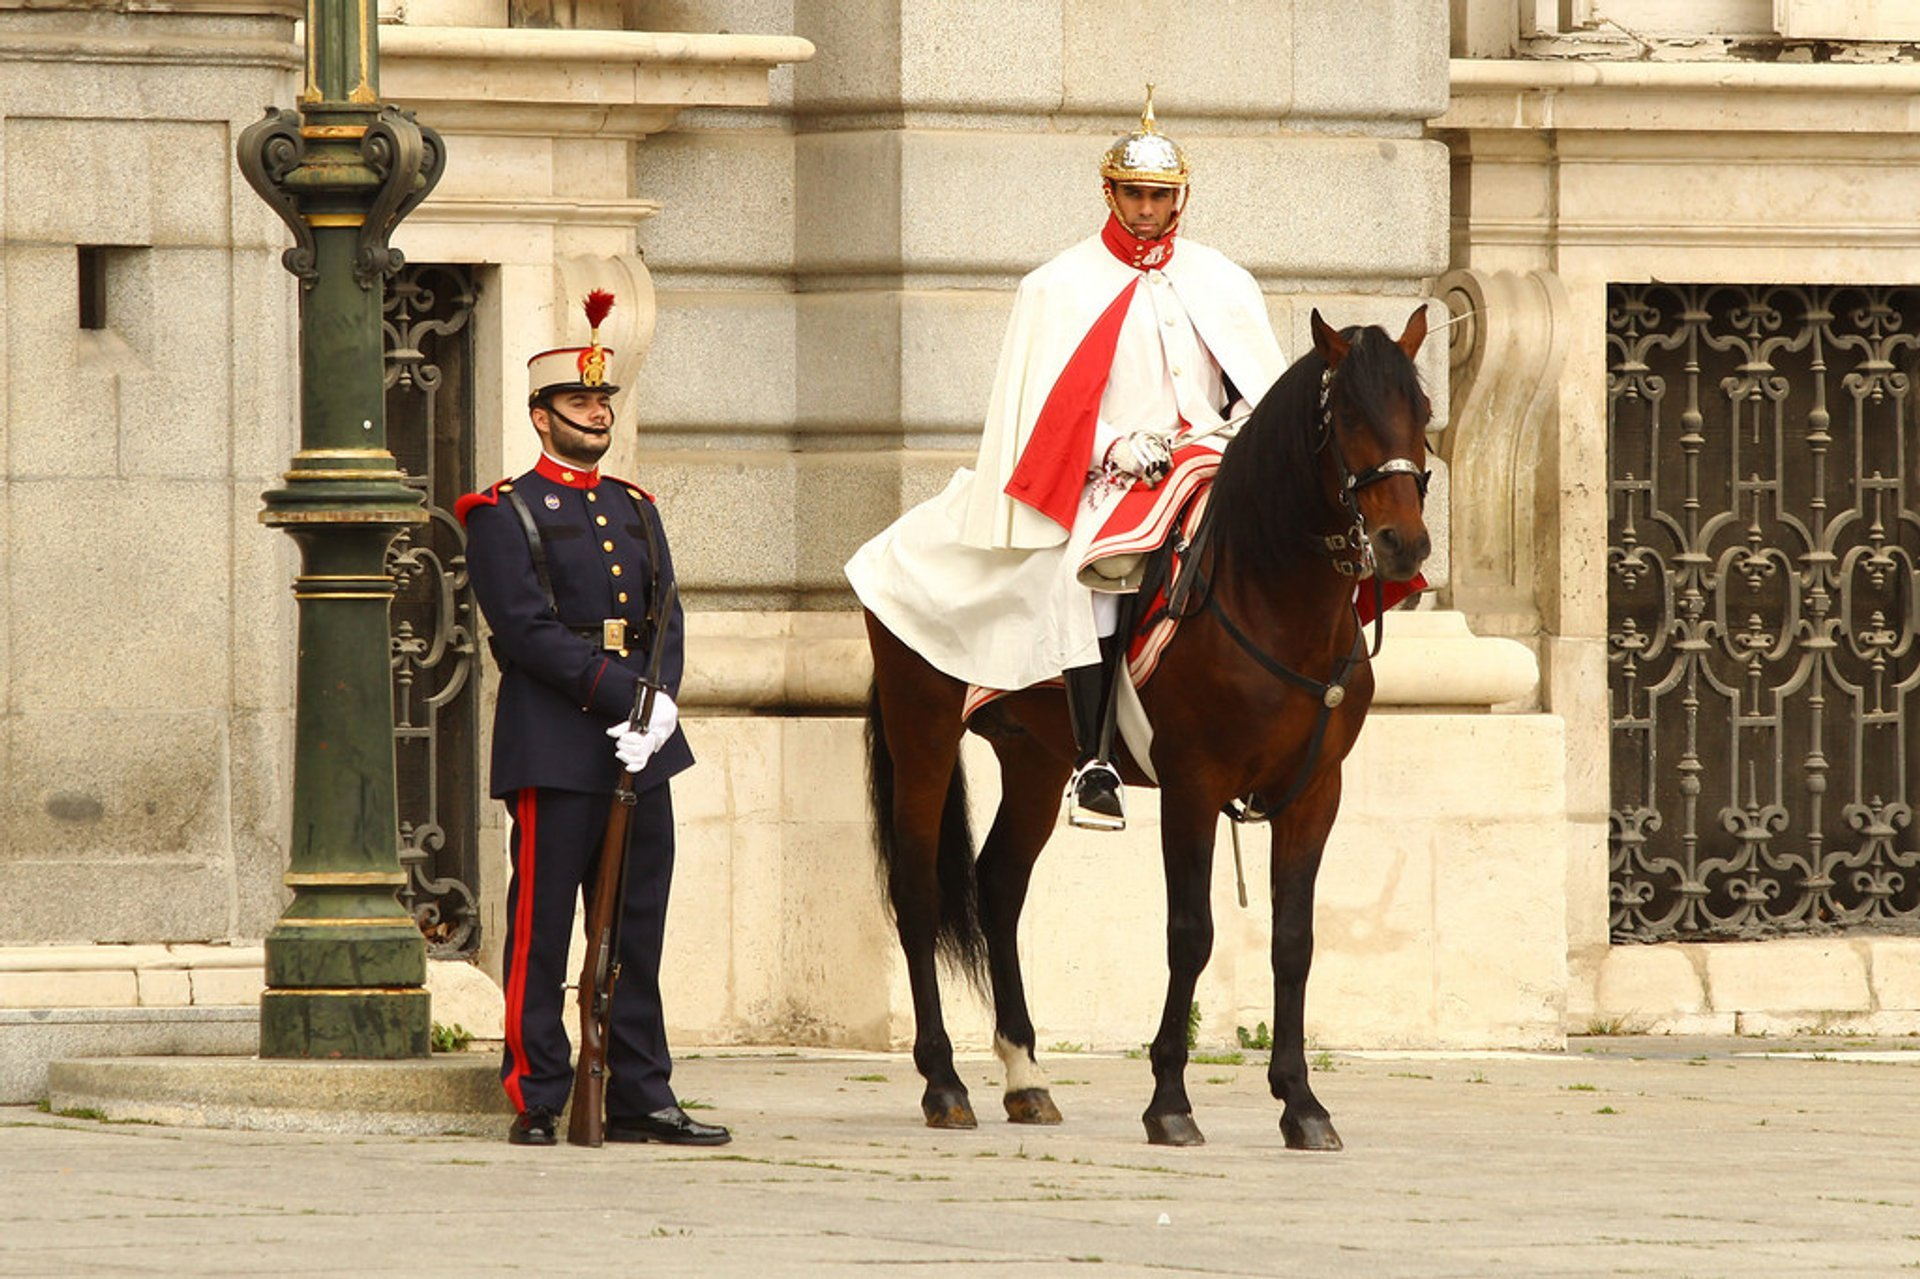 Best time for Solemn Changing of the Guard at the Royal Palace in Madrid 2020